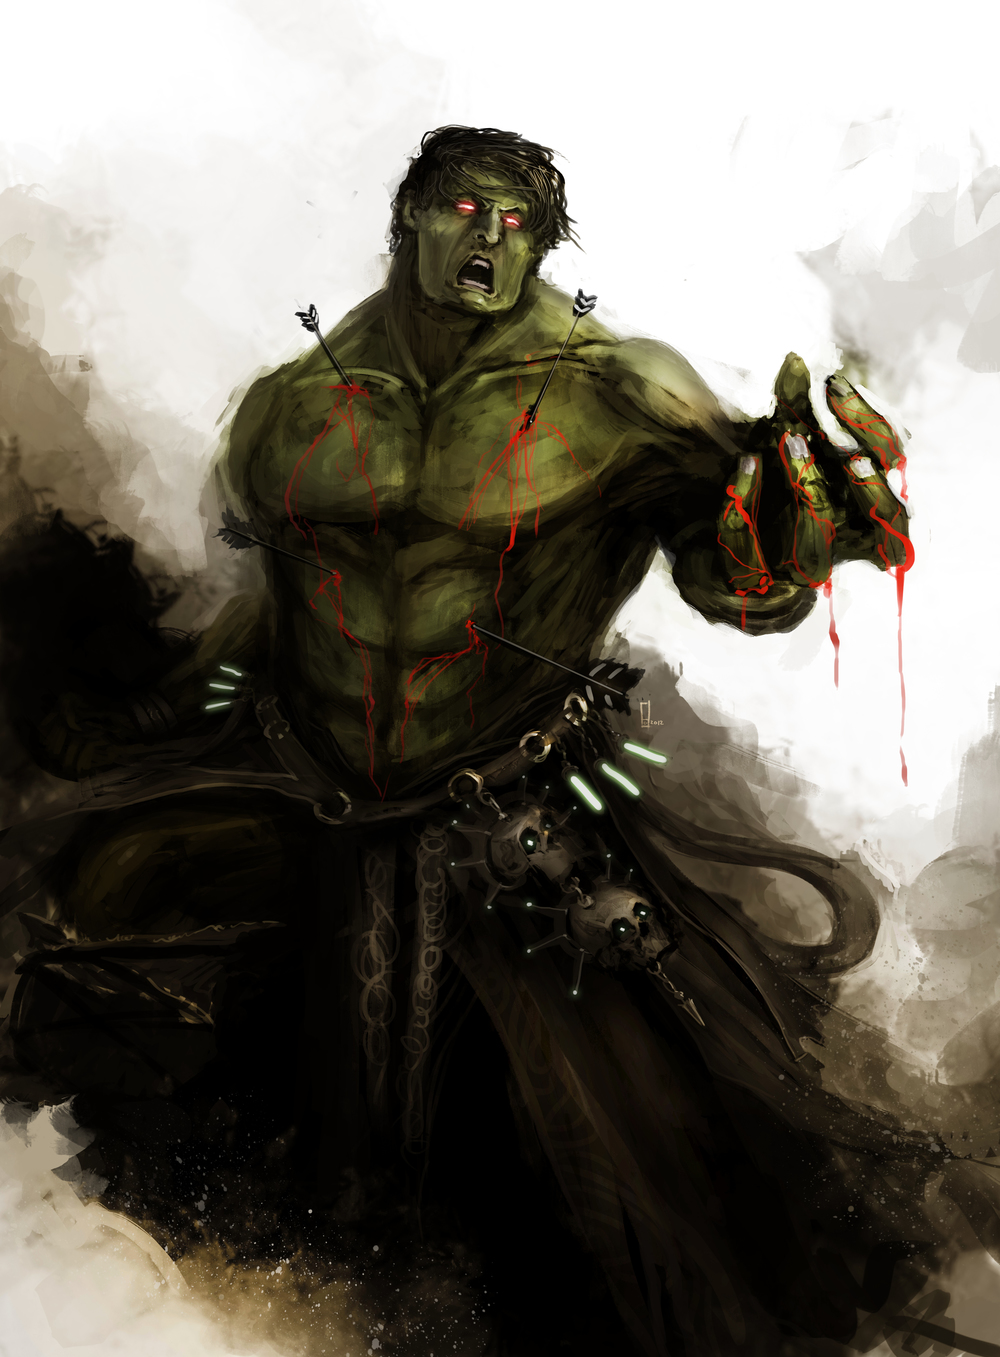 the_avengers___hulk_by_thedurrrrian-d53tnk5.jpg